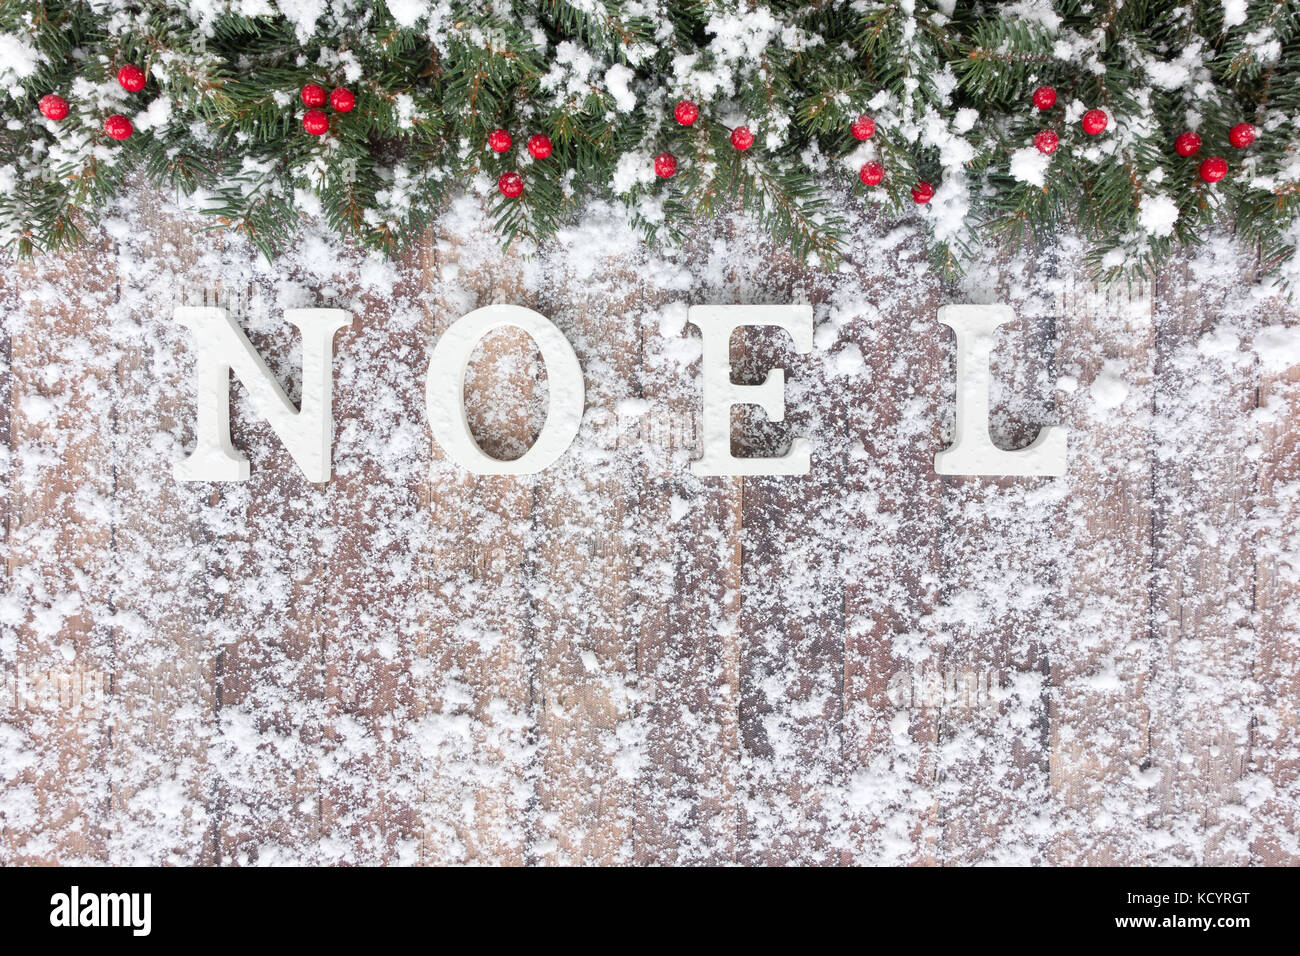 Christmas border out of snow covered natural Christmas tree fir twigs, red berries and noel written with white wood - Stock Image